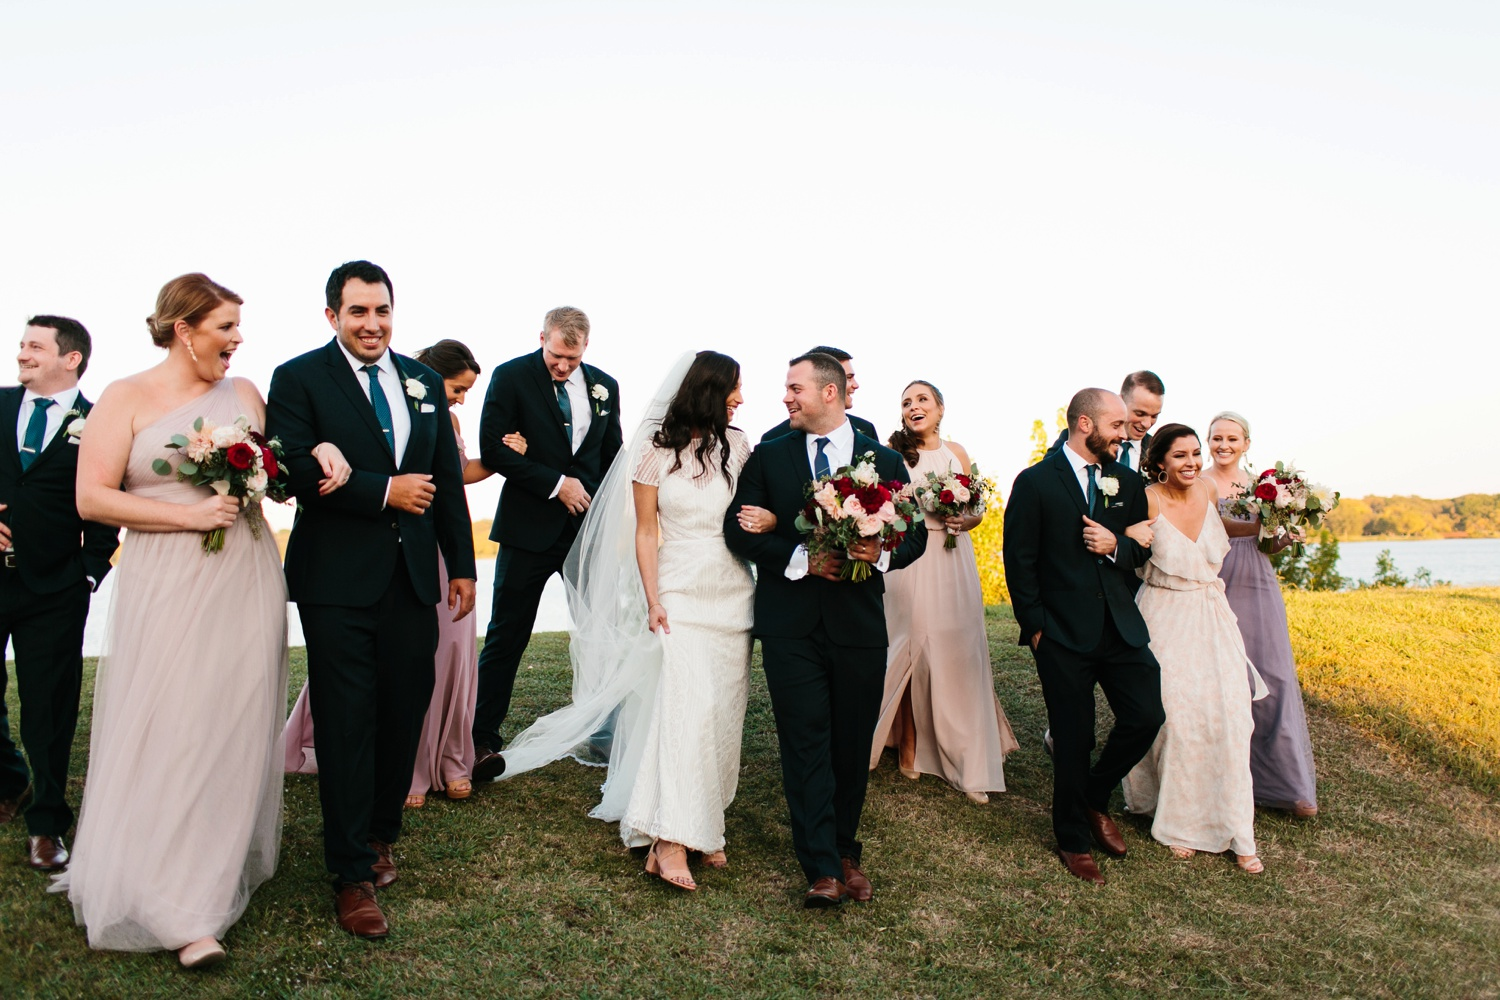 Kadee + Tyler | a raw, emotional wedding at the Filter Building on White Rock Lake in Dallas, TX by North Texas Wedding Photographer, Rachel Meagan Photography 157